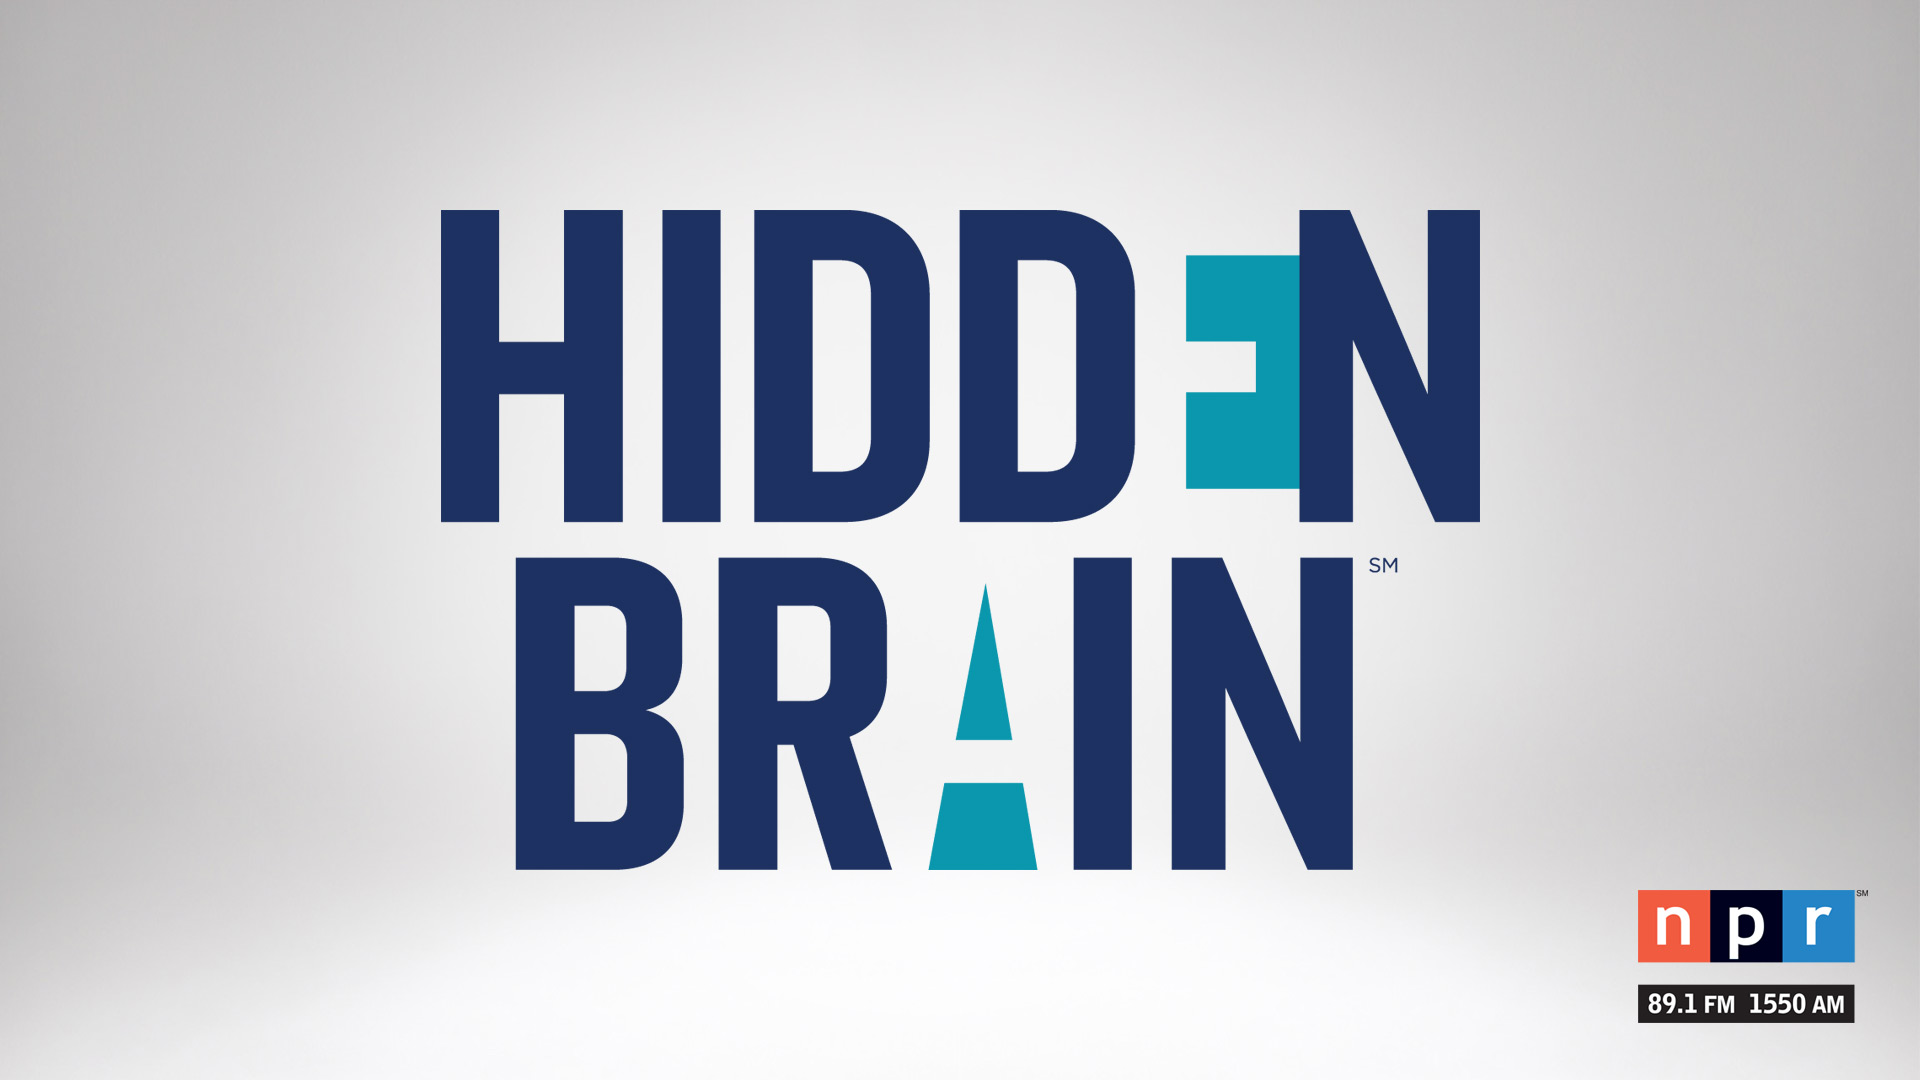 Hidden Brain - This is a really smart podcast about many different psychology concepts that breaks everything down in a way that anyone can understand and learn from